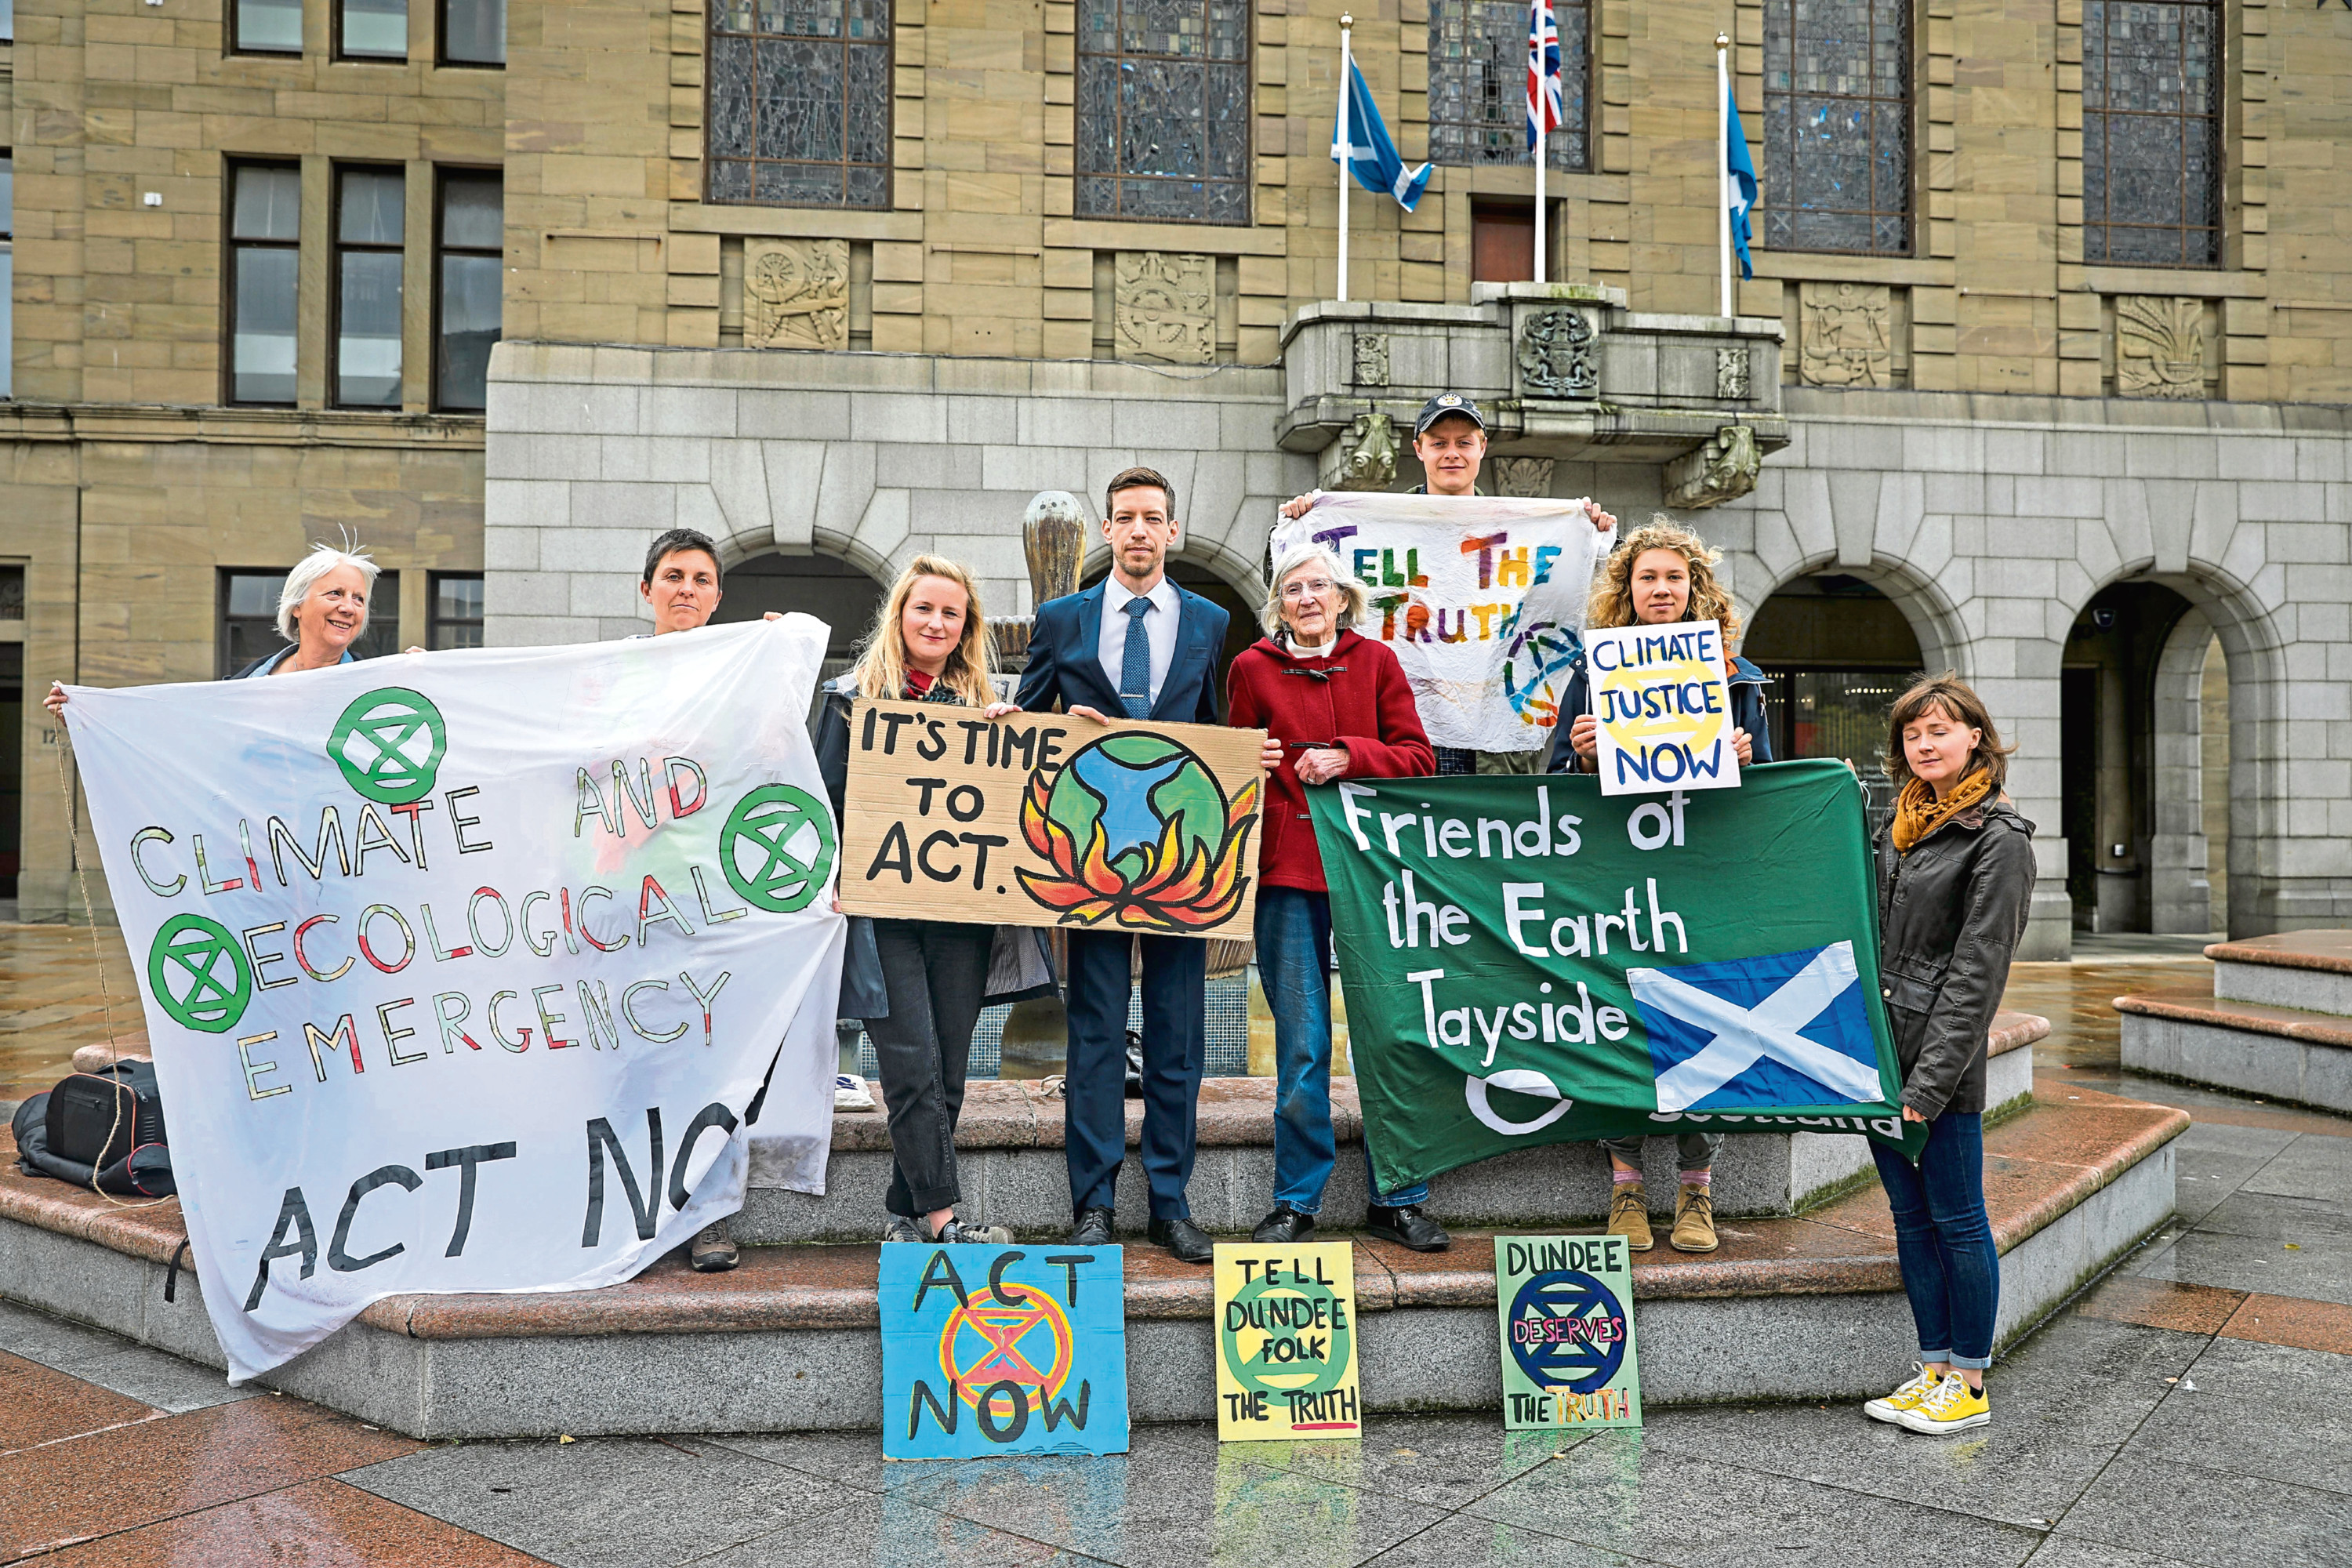 Councillor John Alexander with members of Extinction Rebellion Dundee and Friends of the Earth.